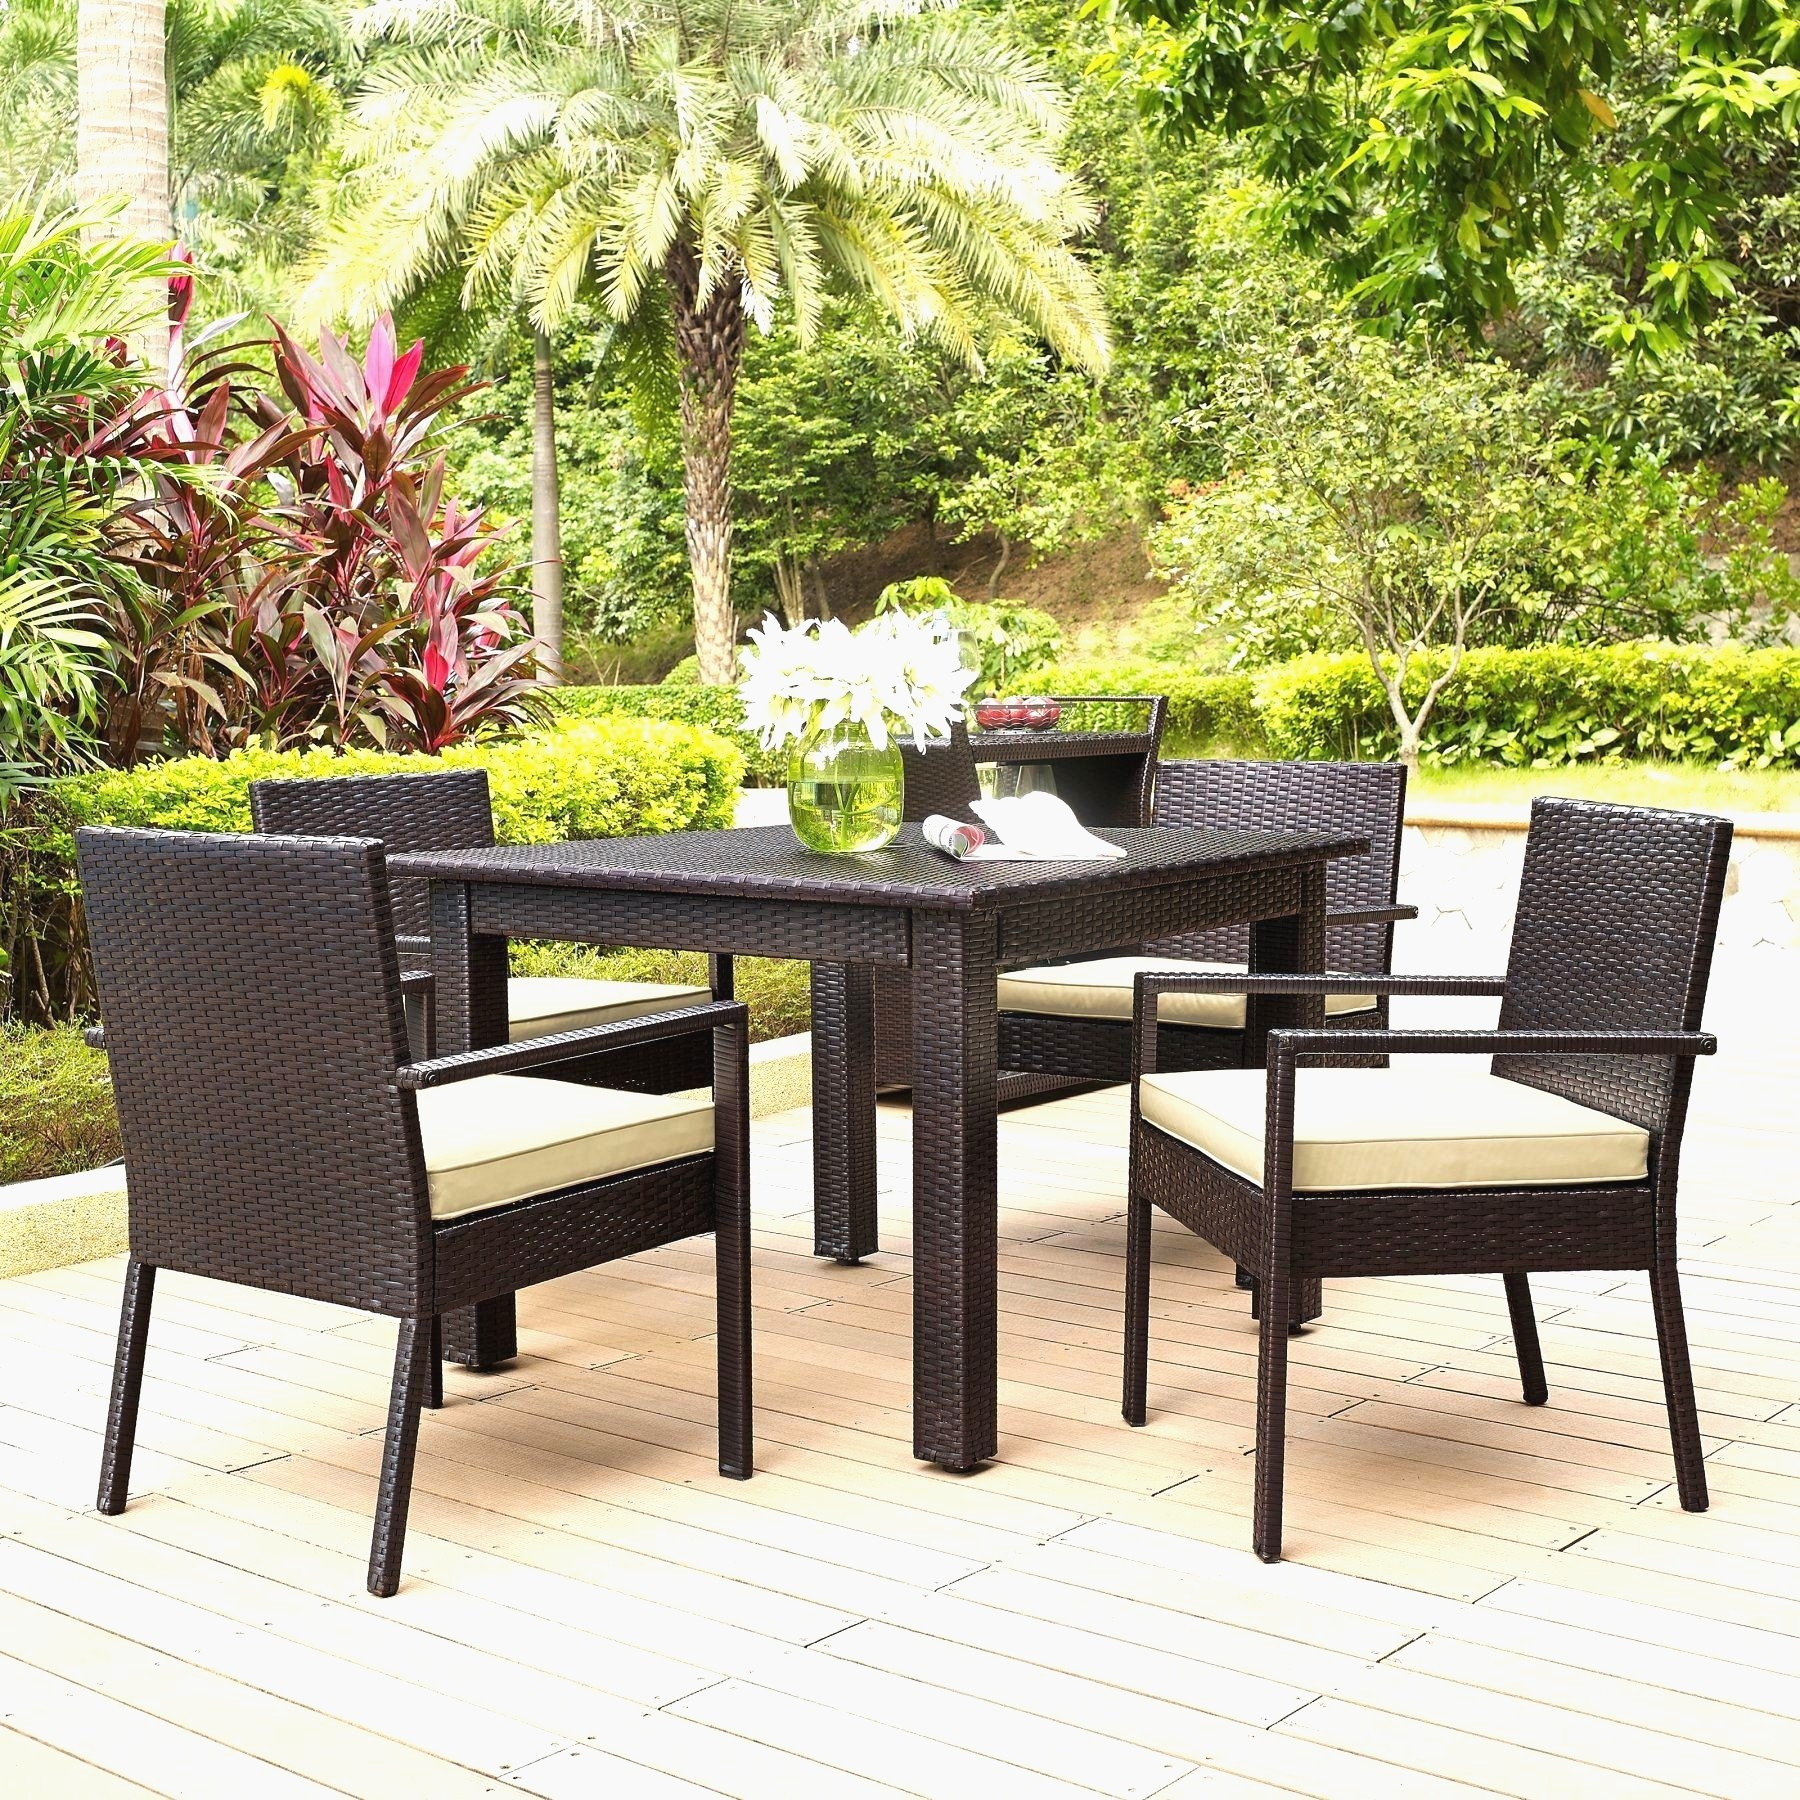 Osh Outdoor Furniture